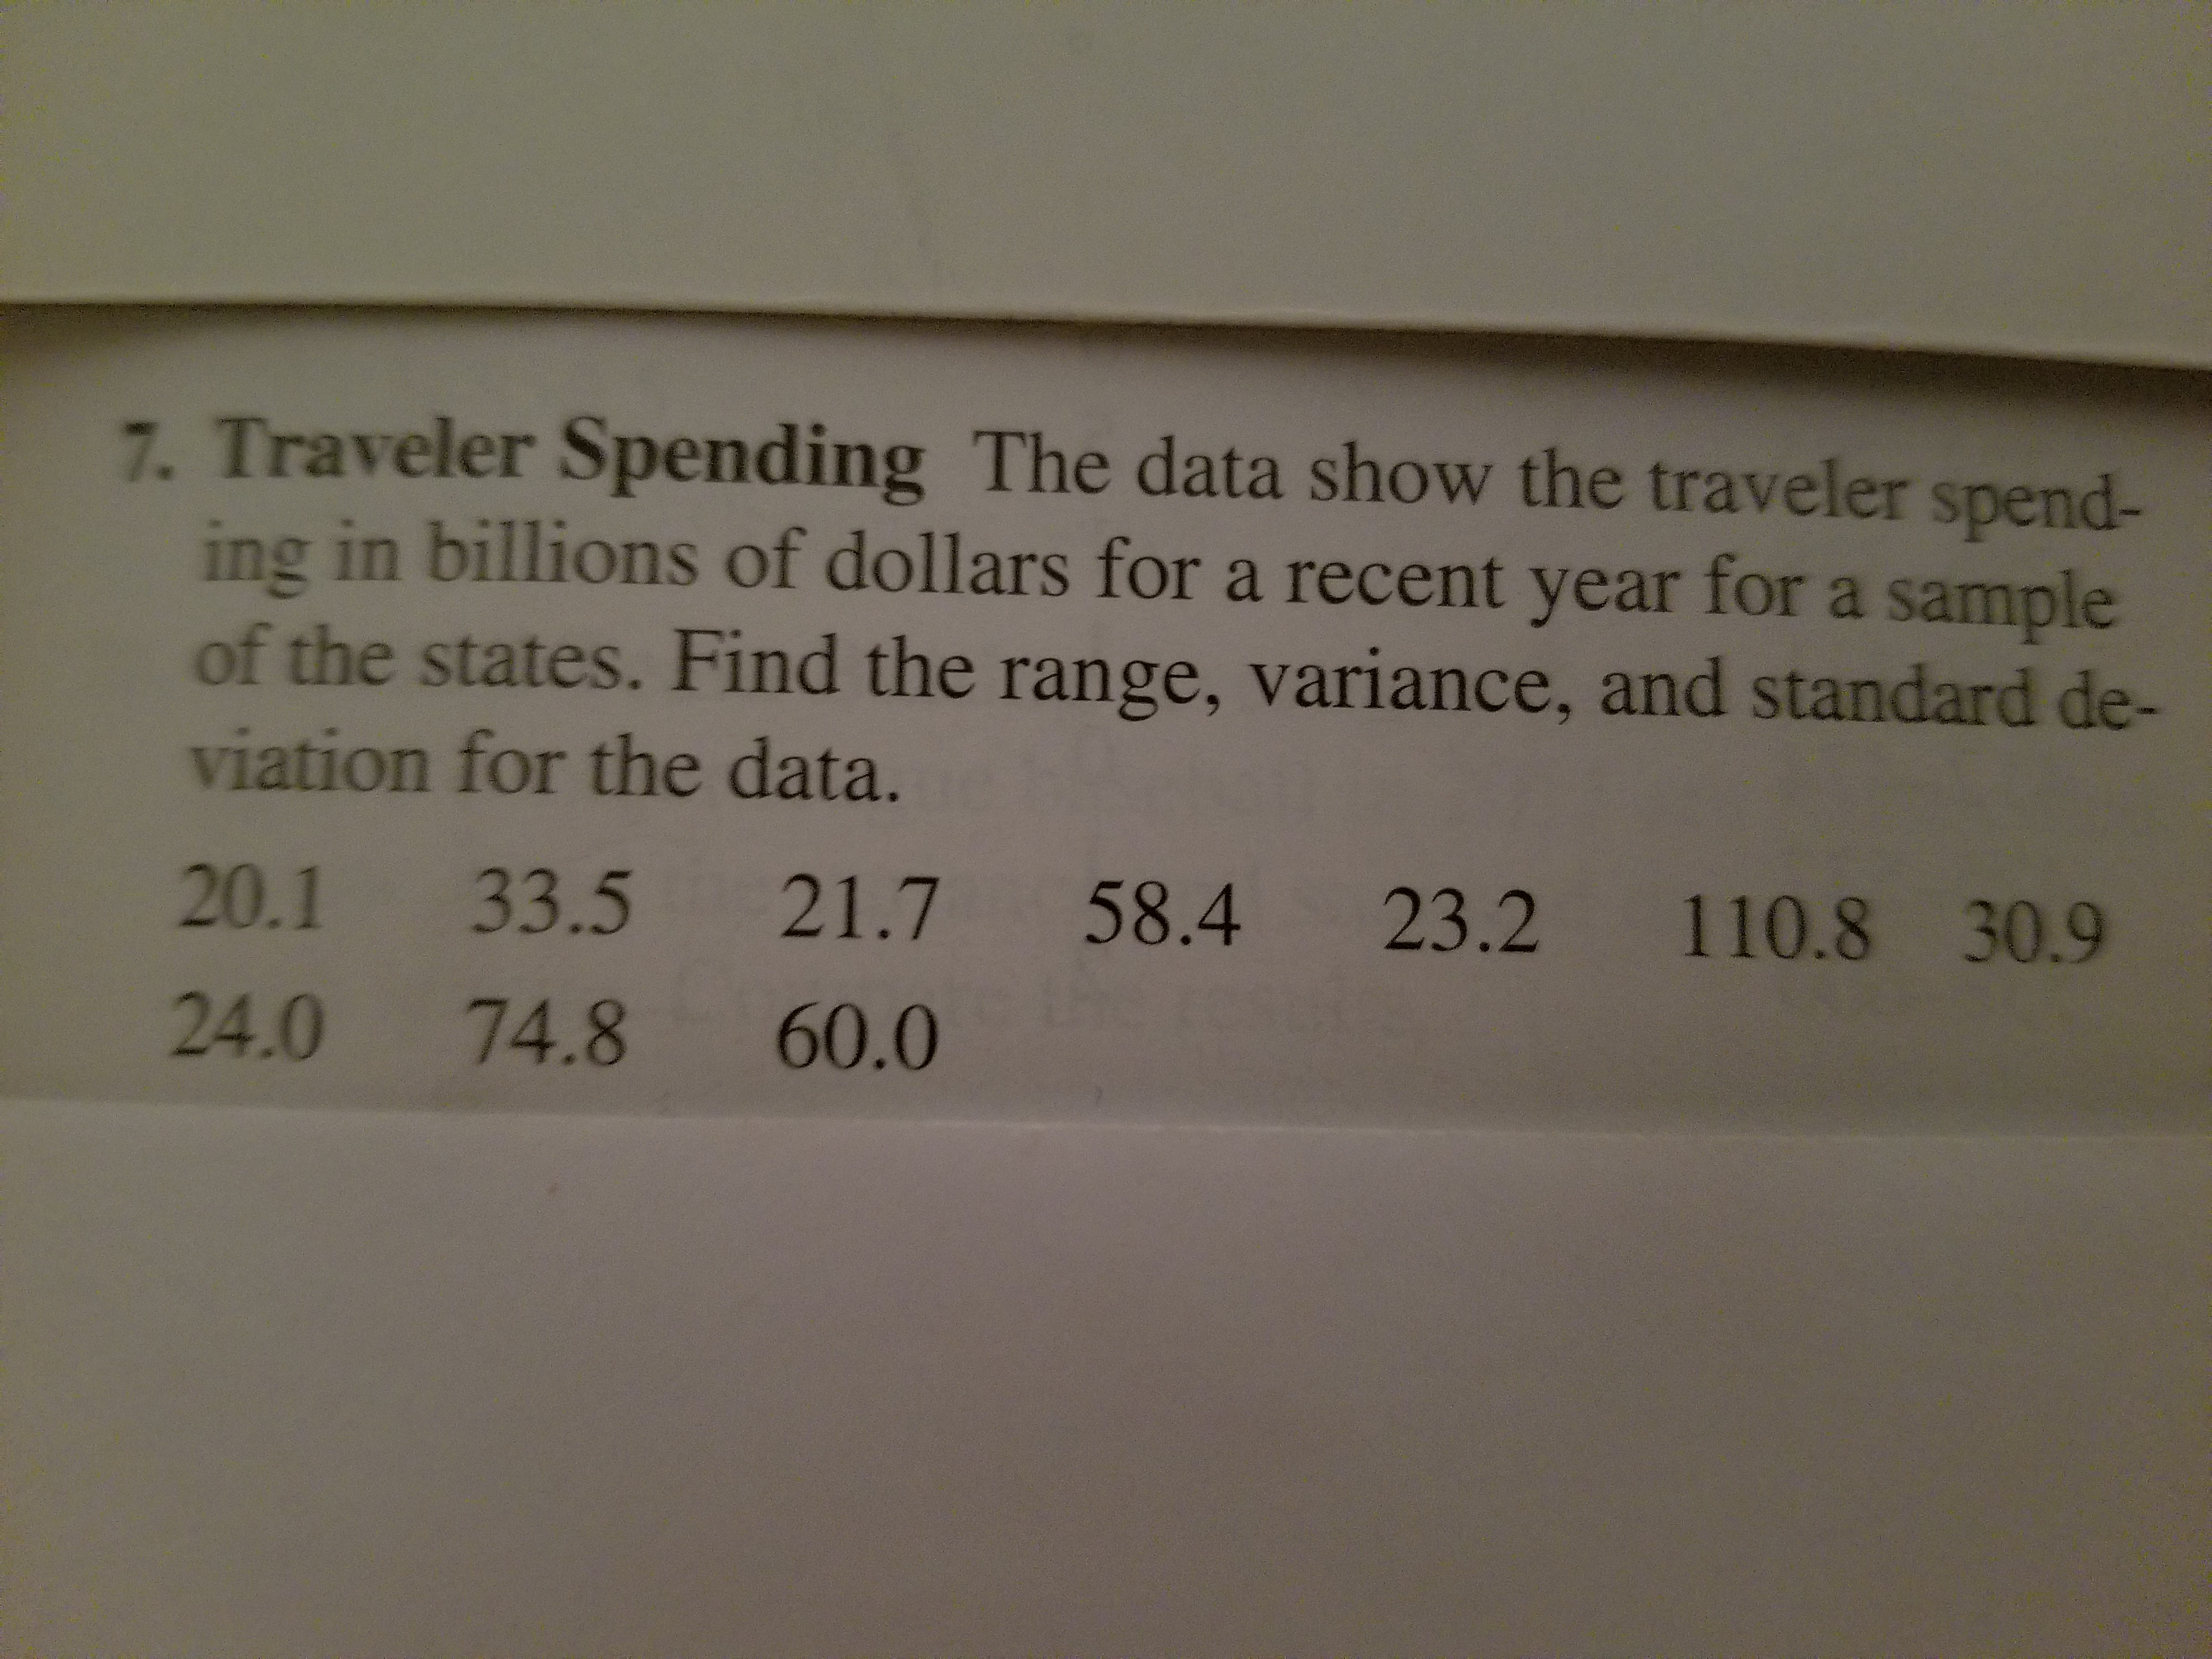 7. Traveler Spending The data show the traveler spend- ing in billions of dollars for a recent year for a sample of the states. Find the range, variance, and standard de- viation for the data. 20.1 33.5 21.7 58.4 23.2 110.8 30.9 24.0 74.8 60.0